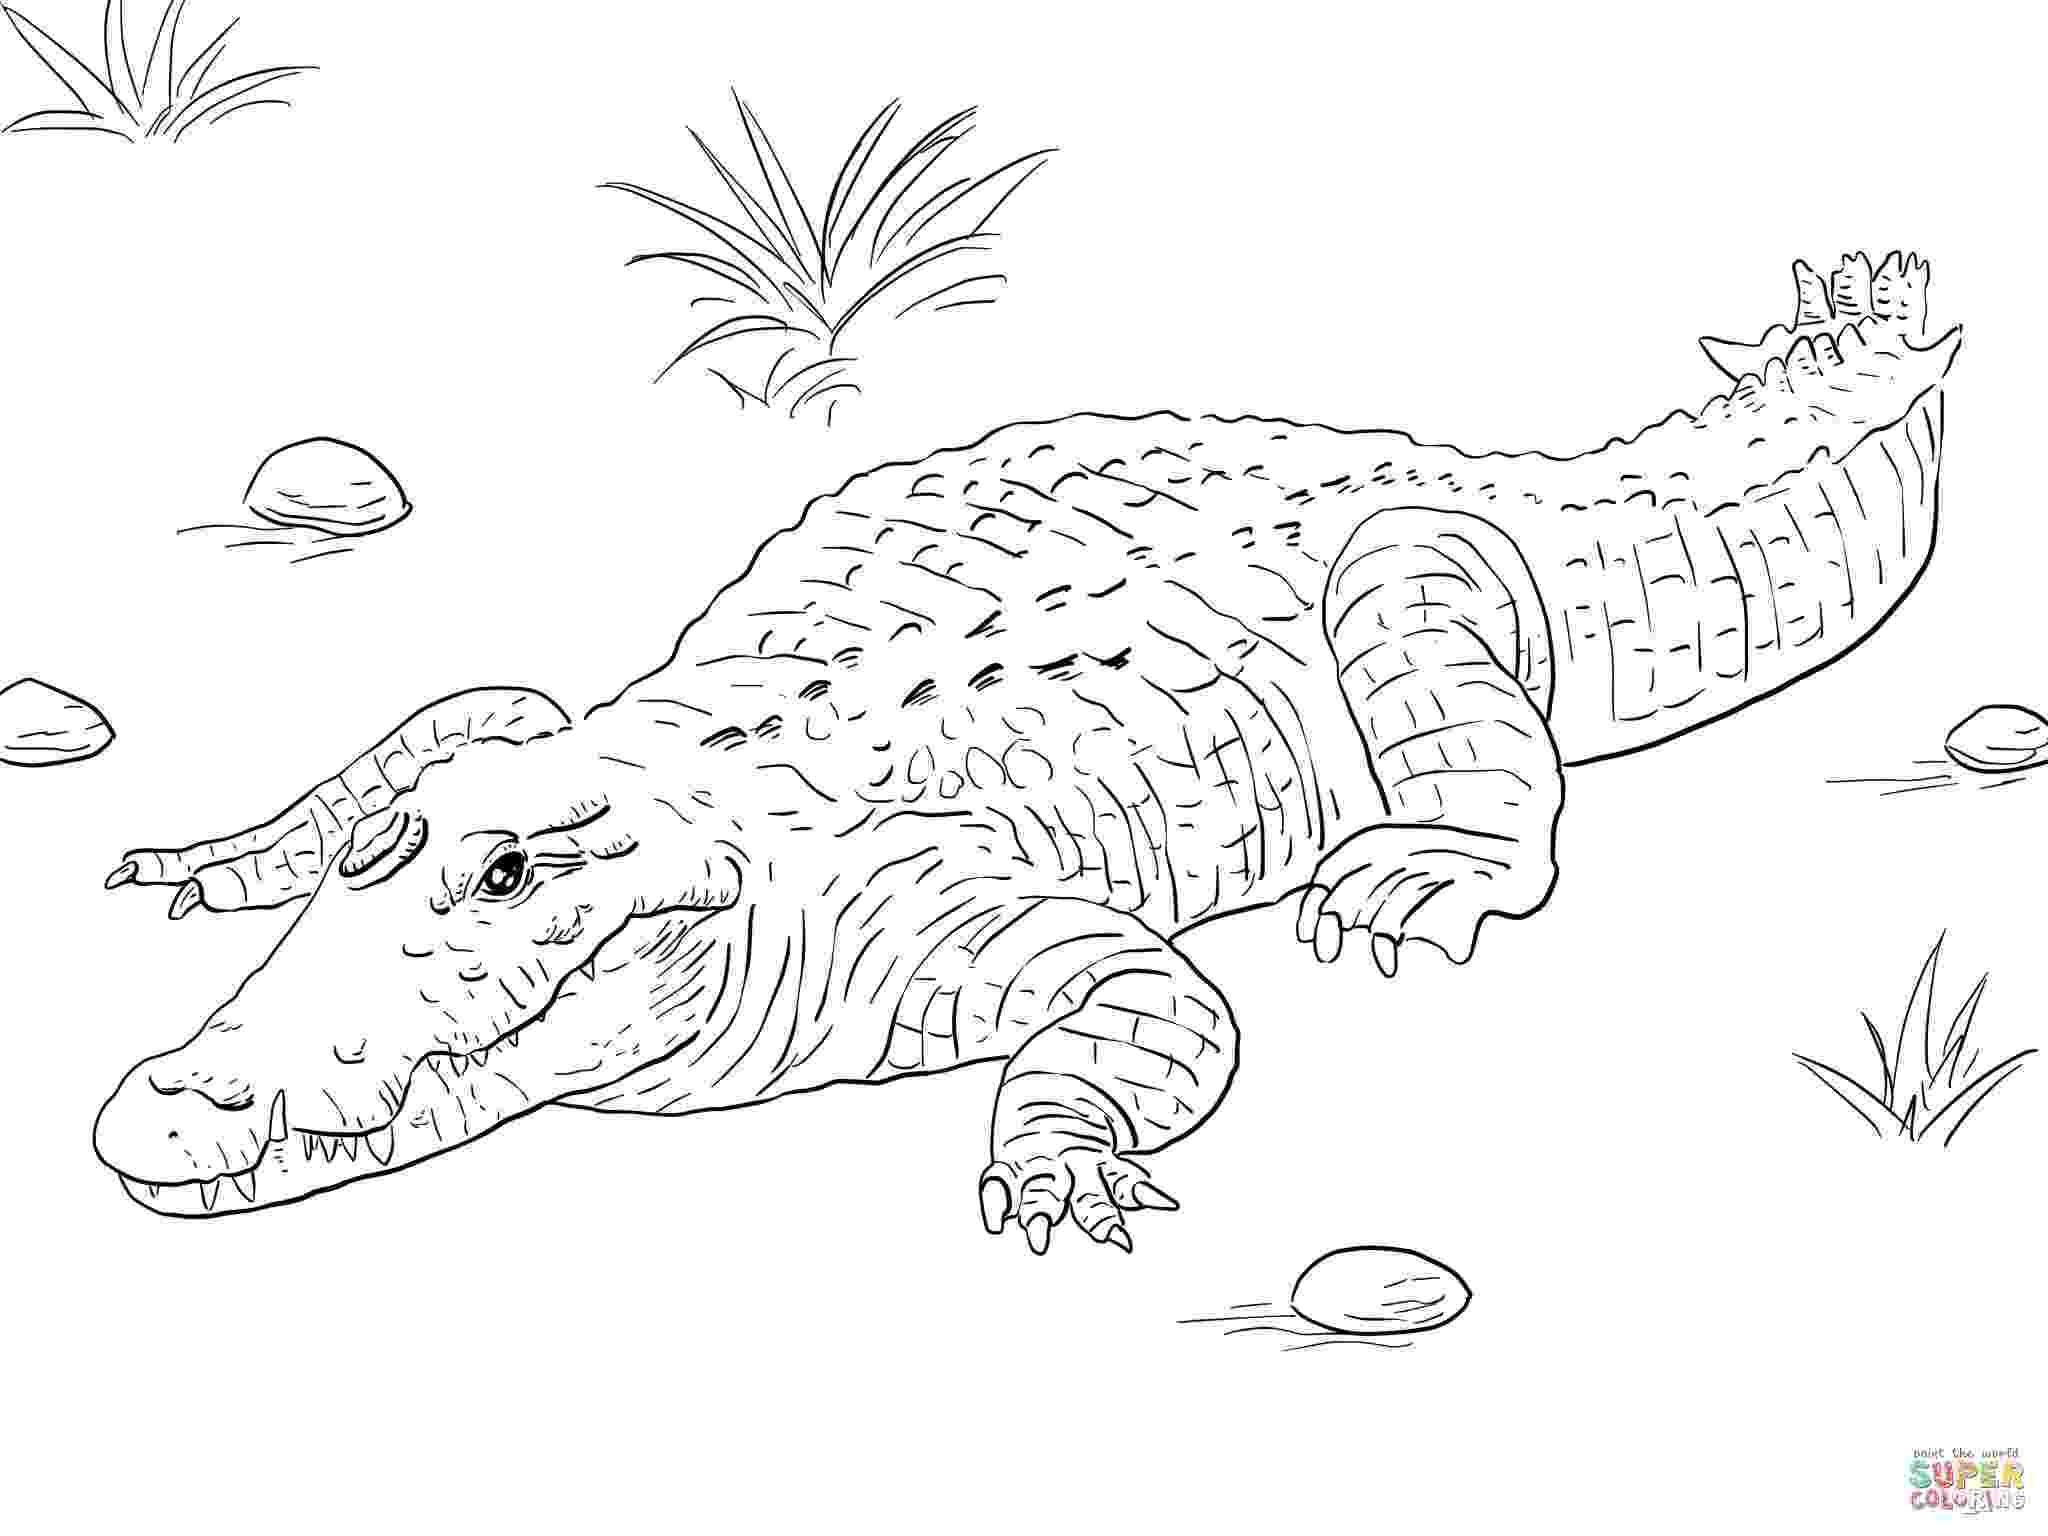 crocodile colouring crocodile coloring pages to download and print for free crocodile colouring 1 1